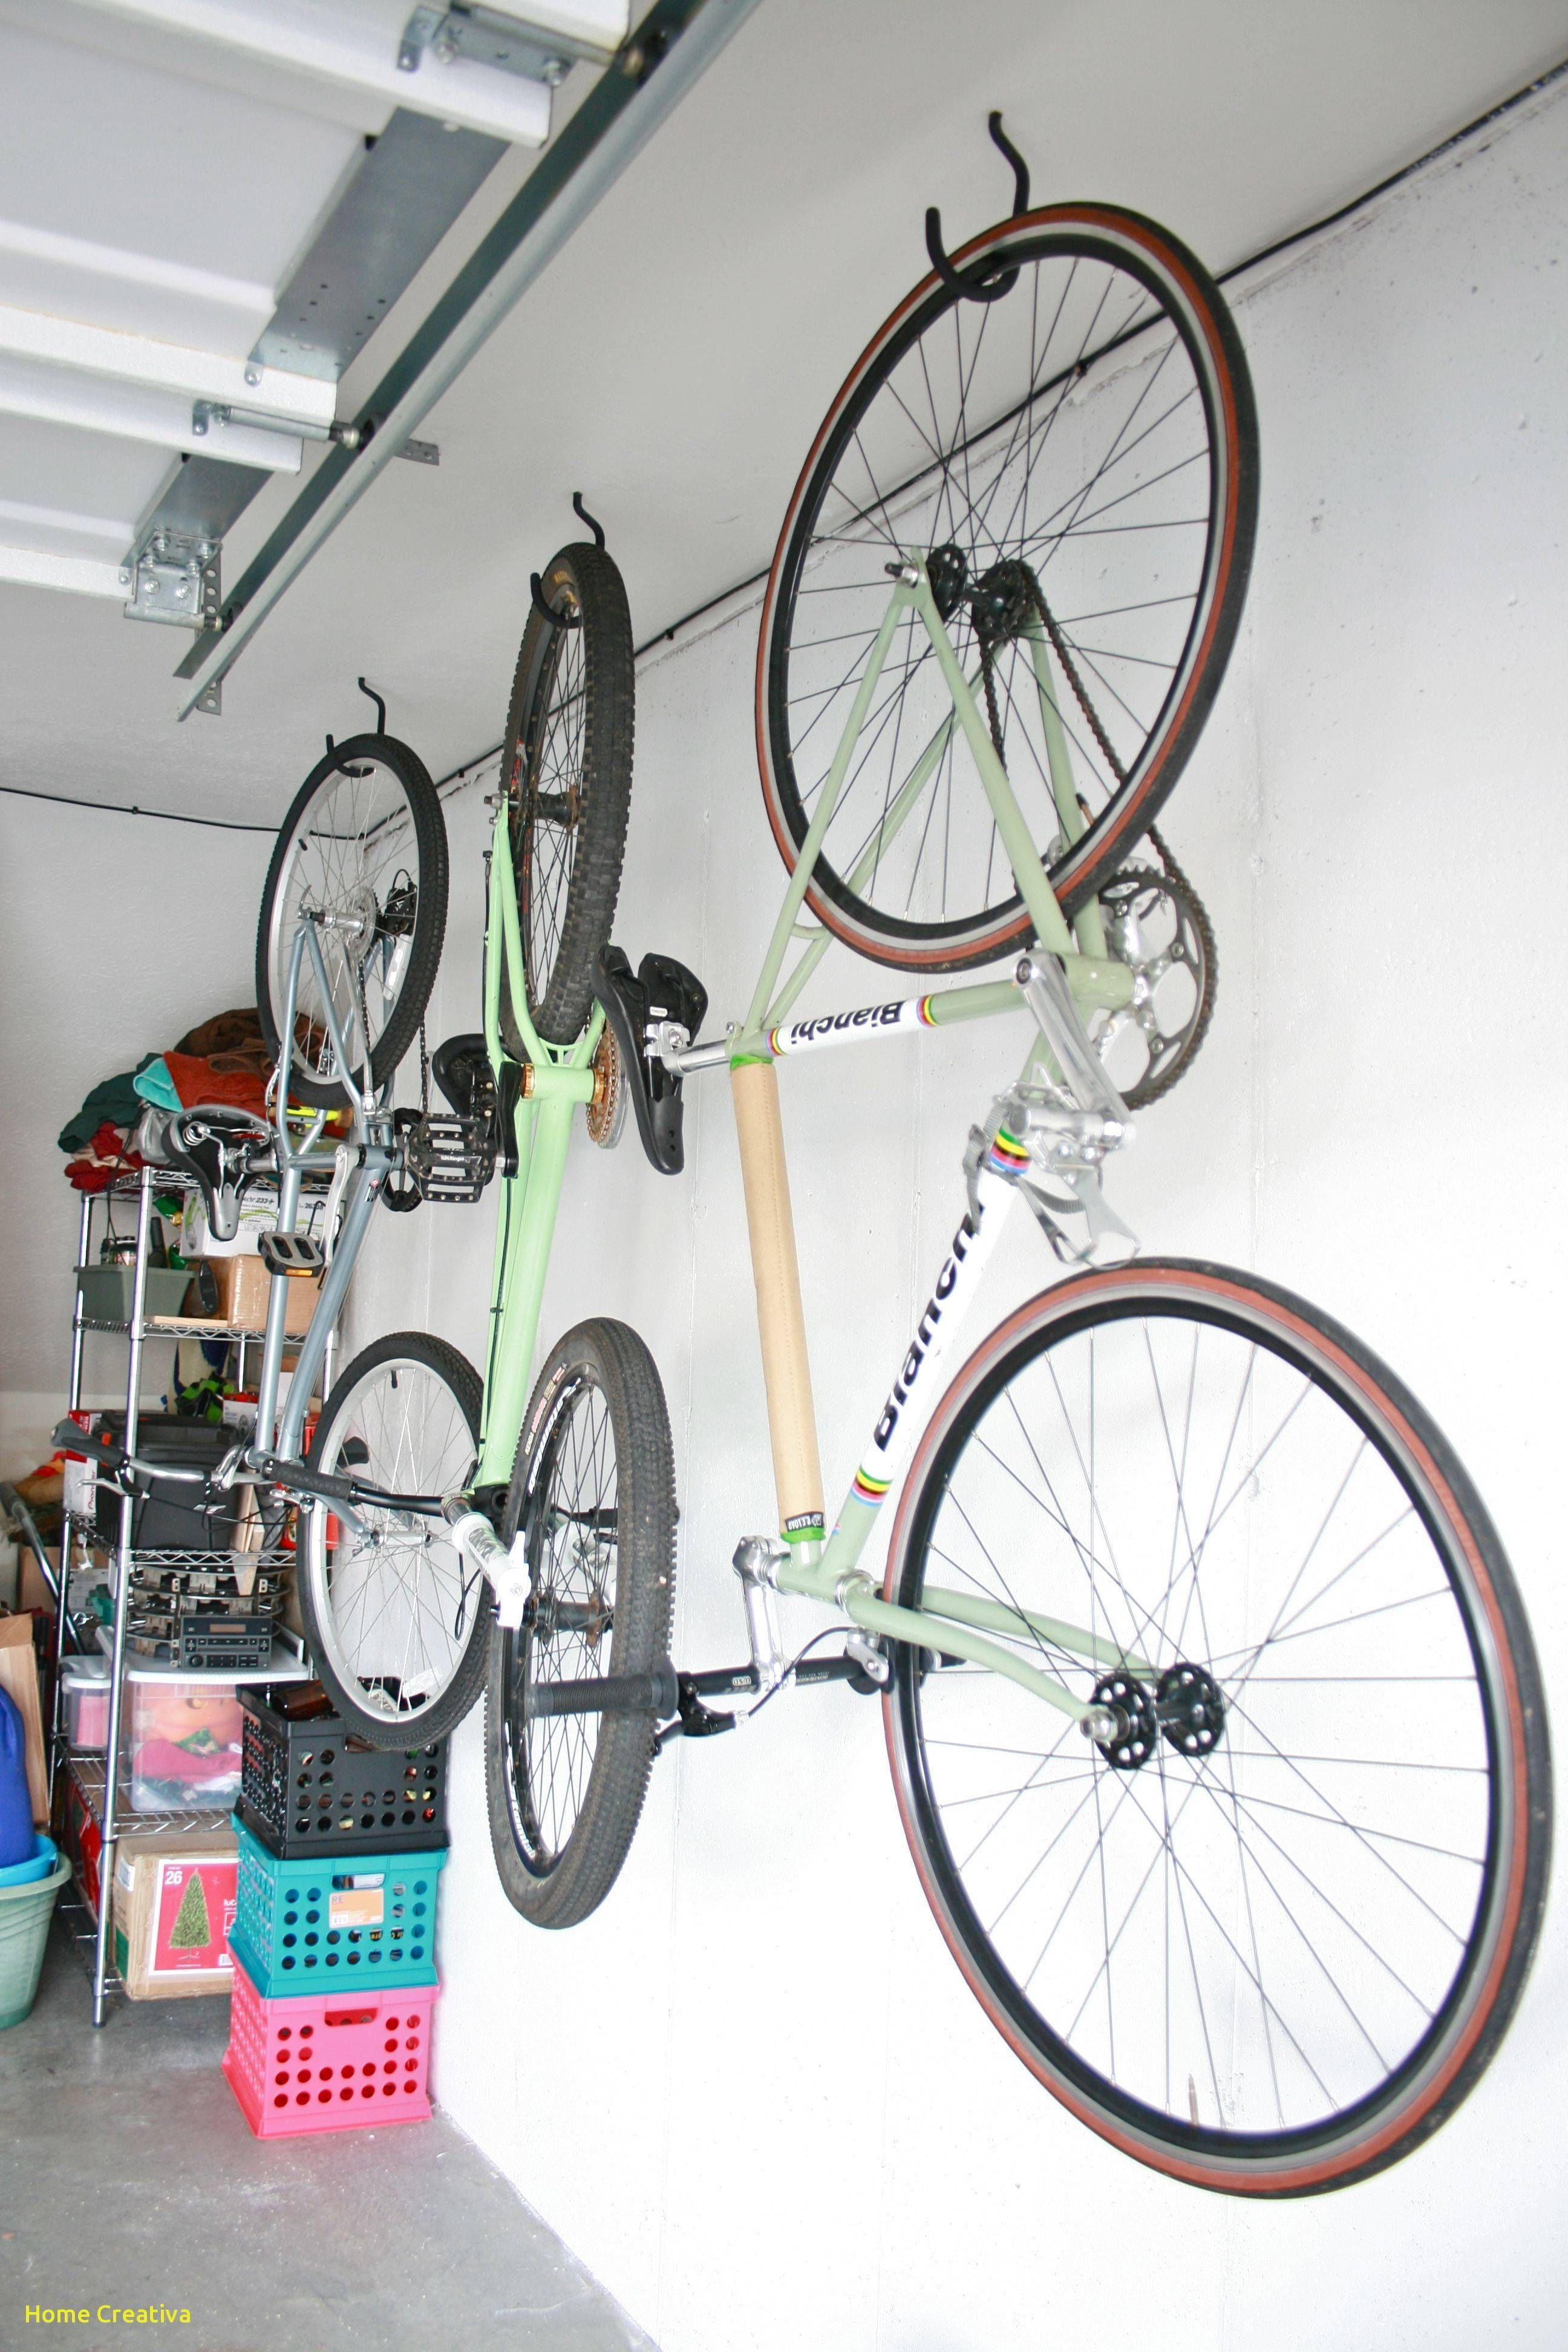 Functional Artistic Wall Coverings Are Becoming A New Staple In The Home Nycxdesign Bike Storage Bicycle Storage Bicycle Hanger